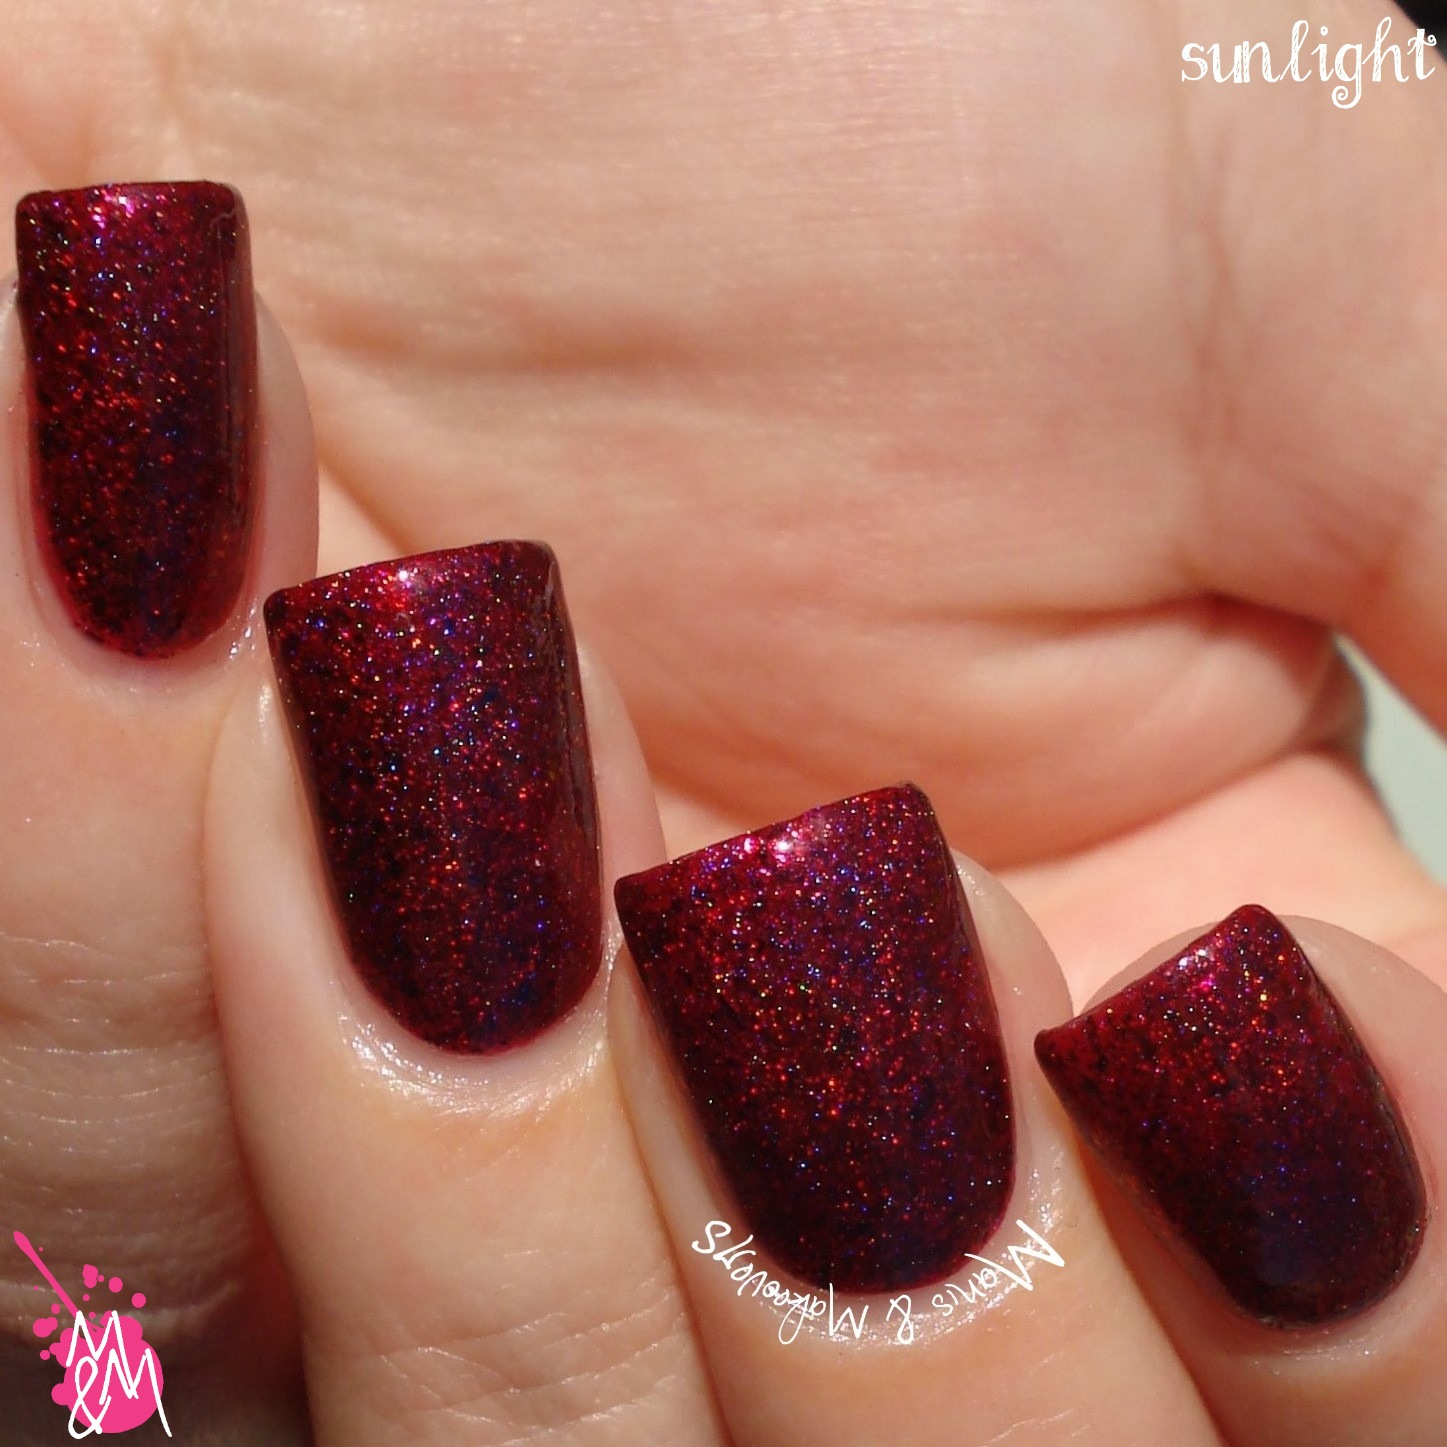 Manis & Makeovers: Ms. Sparkle November Duo